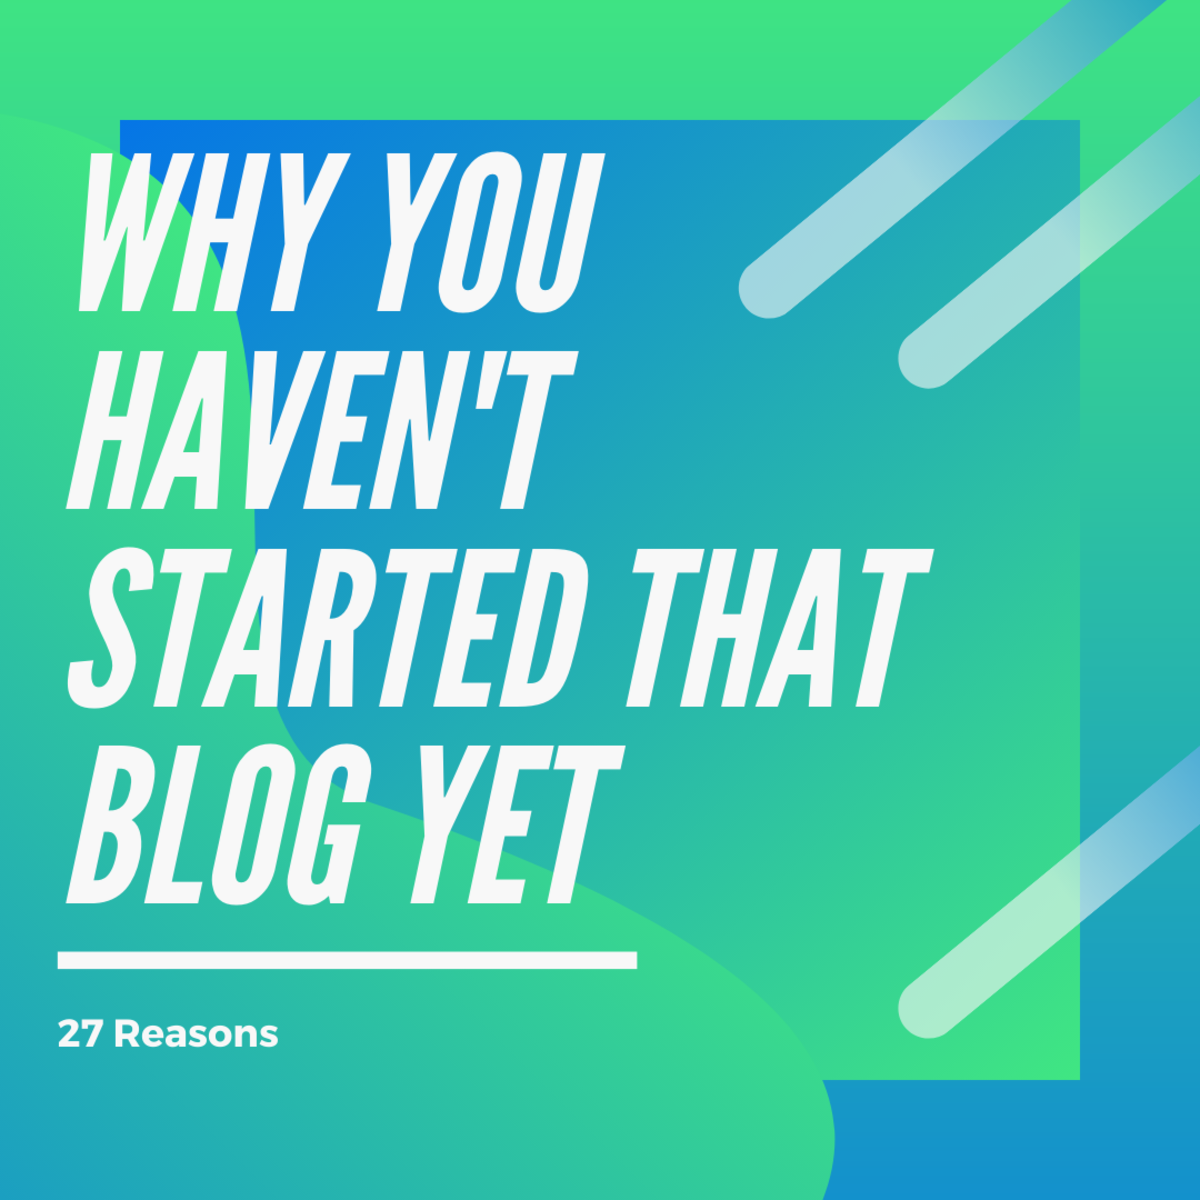 27 Reasons Why You Haven't Started That Blog Yet